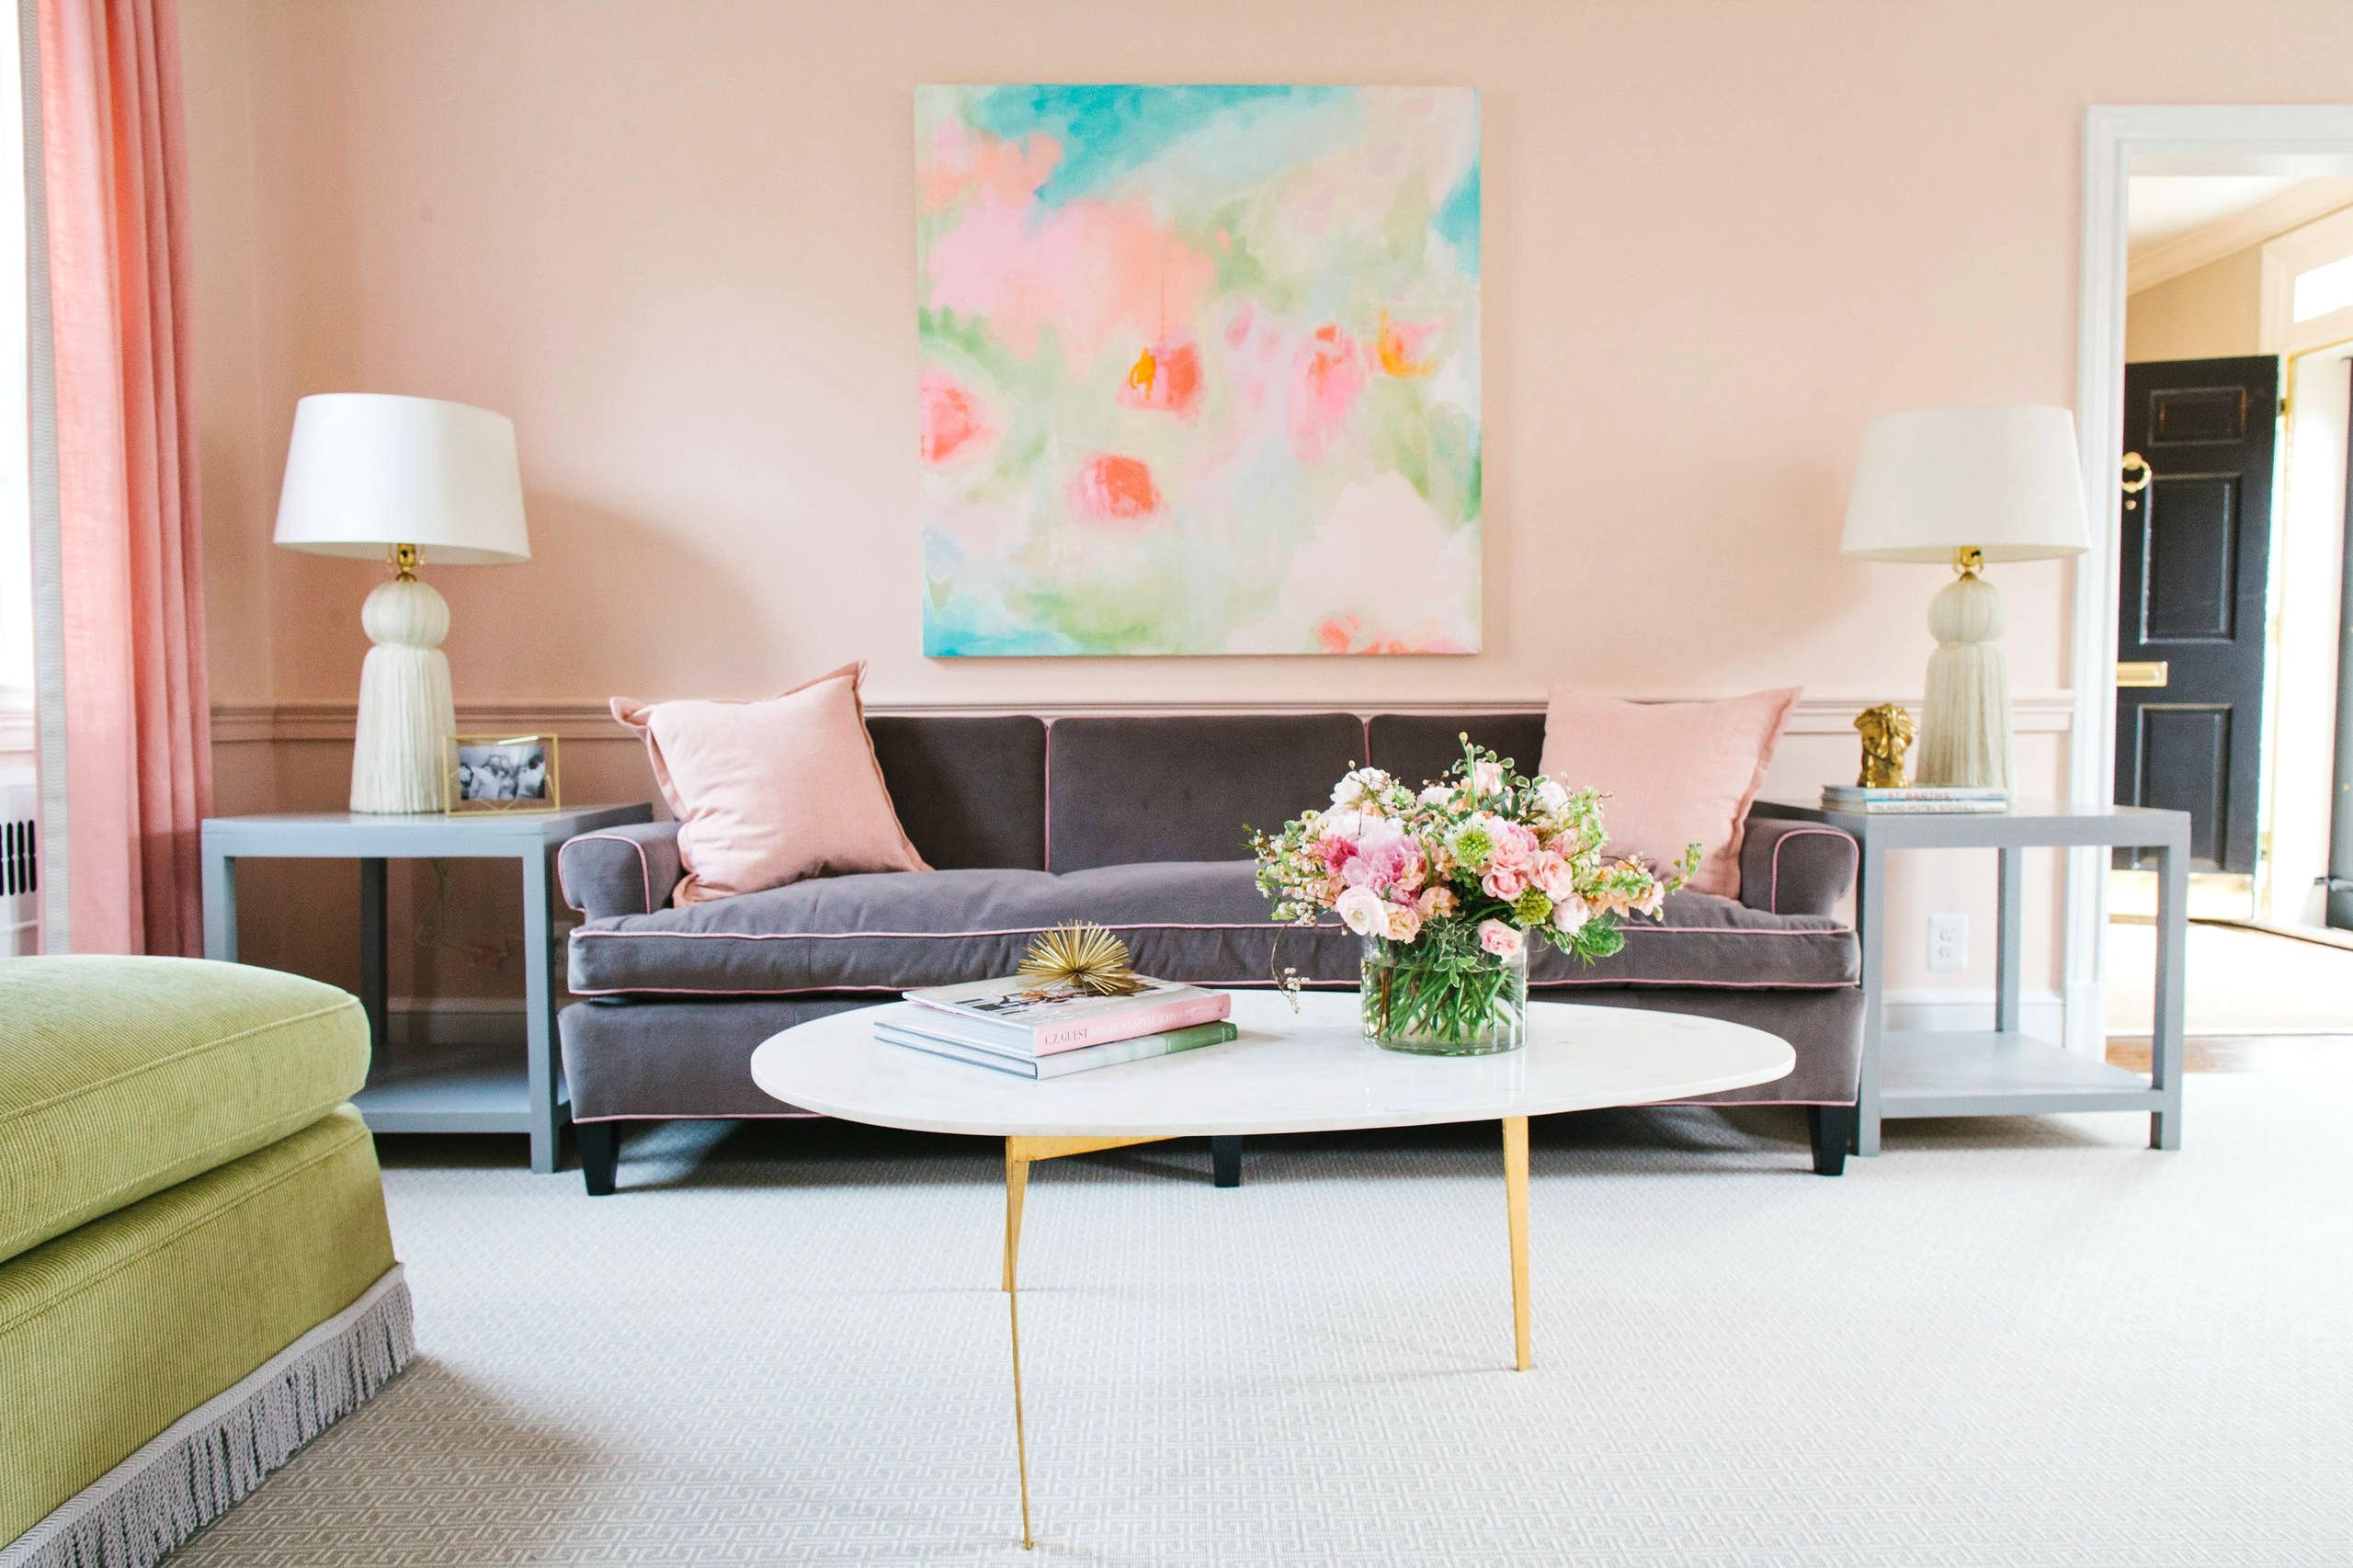 Attractive 5 STUNNING Pastel Rooms   Decorating With Pantone 2016 Color Trends | Pastel  Living Room, Pantone 2016 And Turquoise Dresser